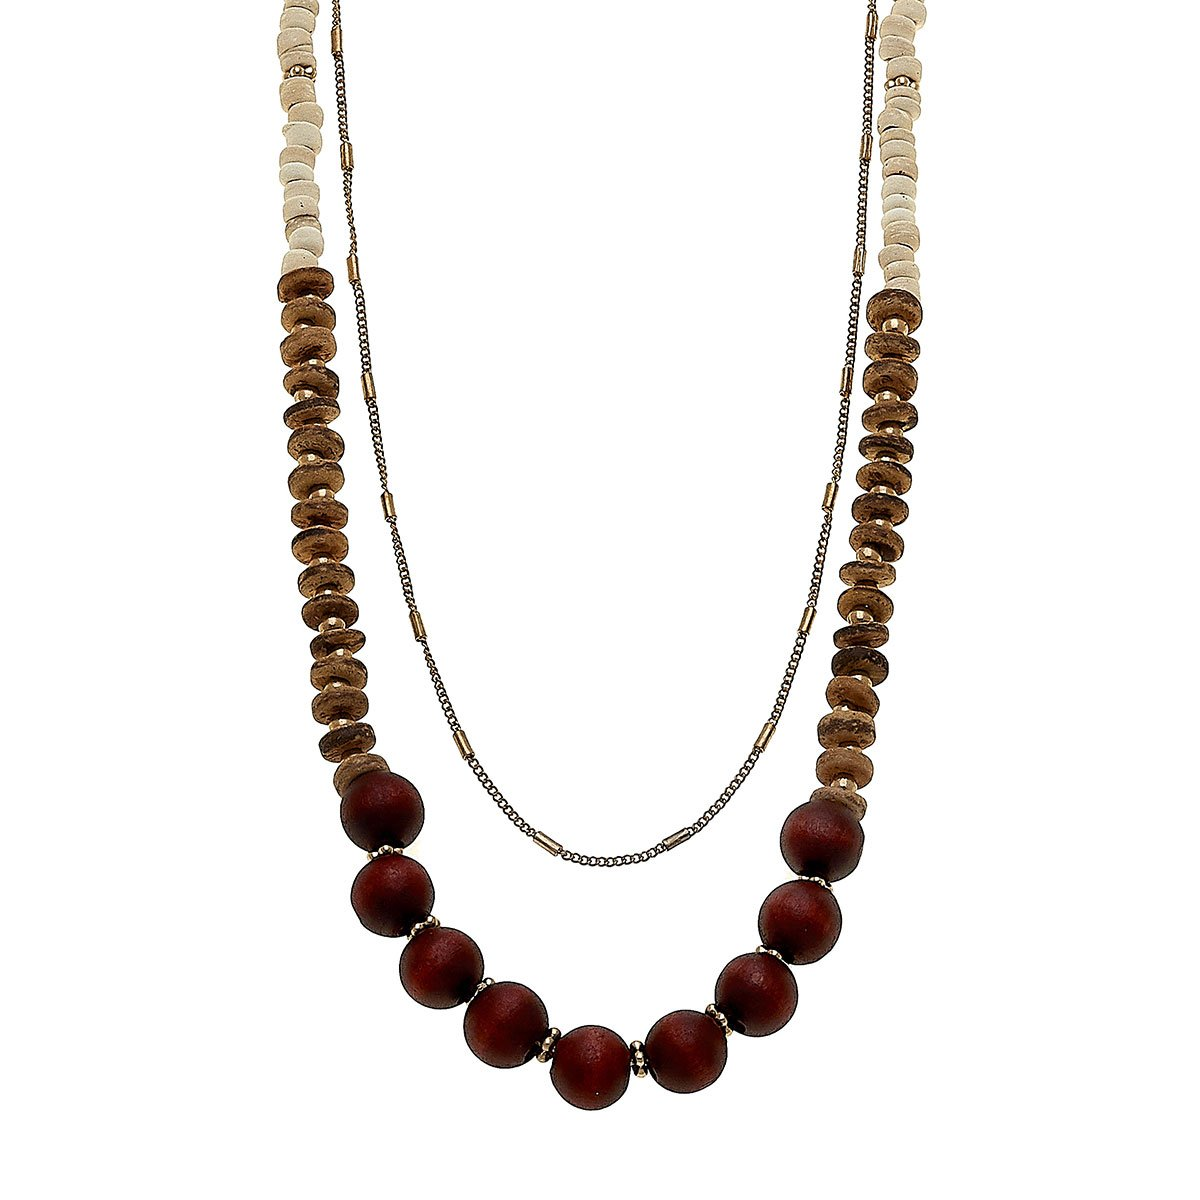 Henley Layered Necklace In Beige Tonal Wood & Clay